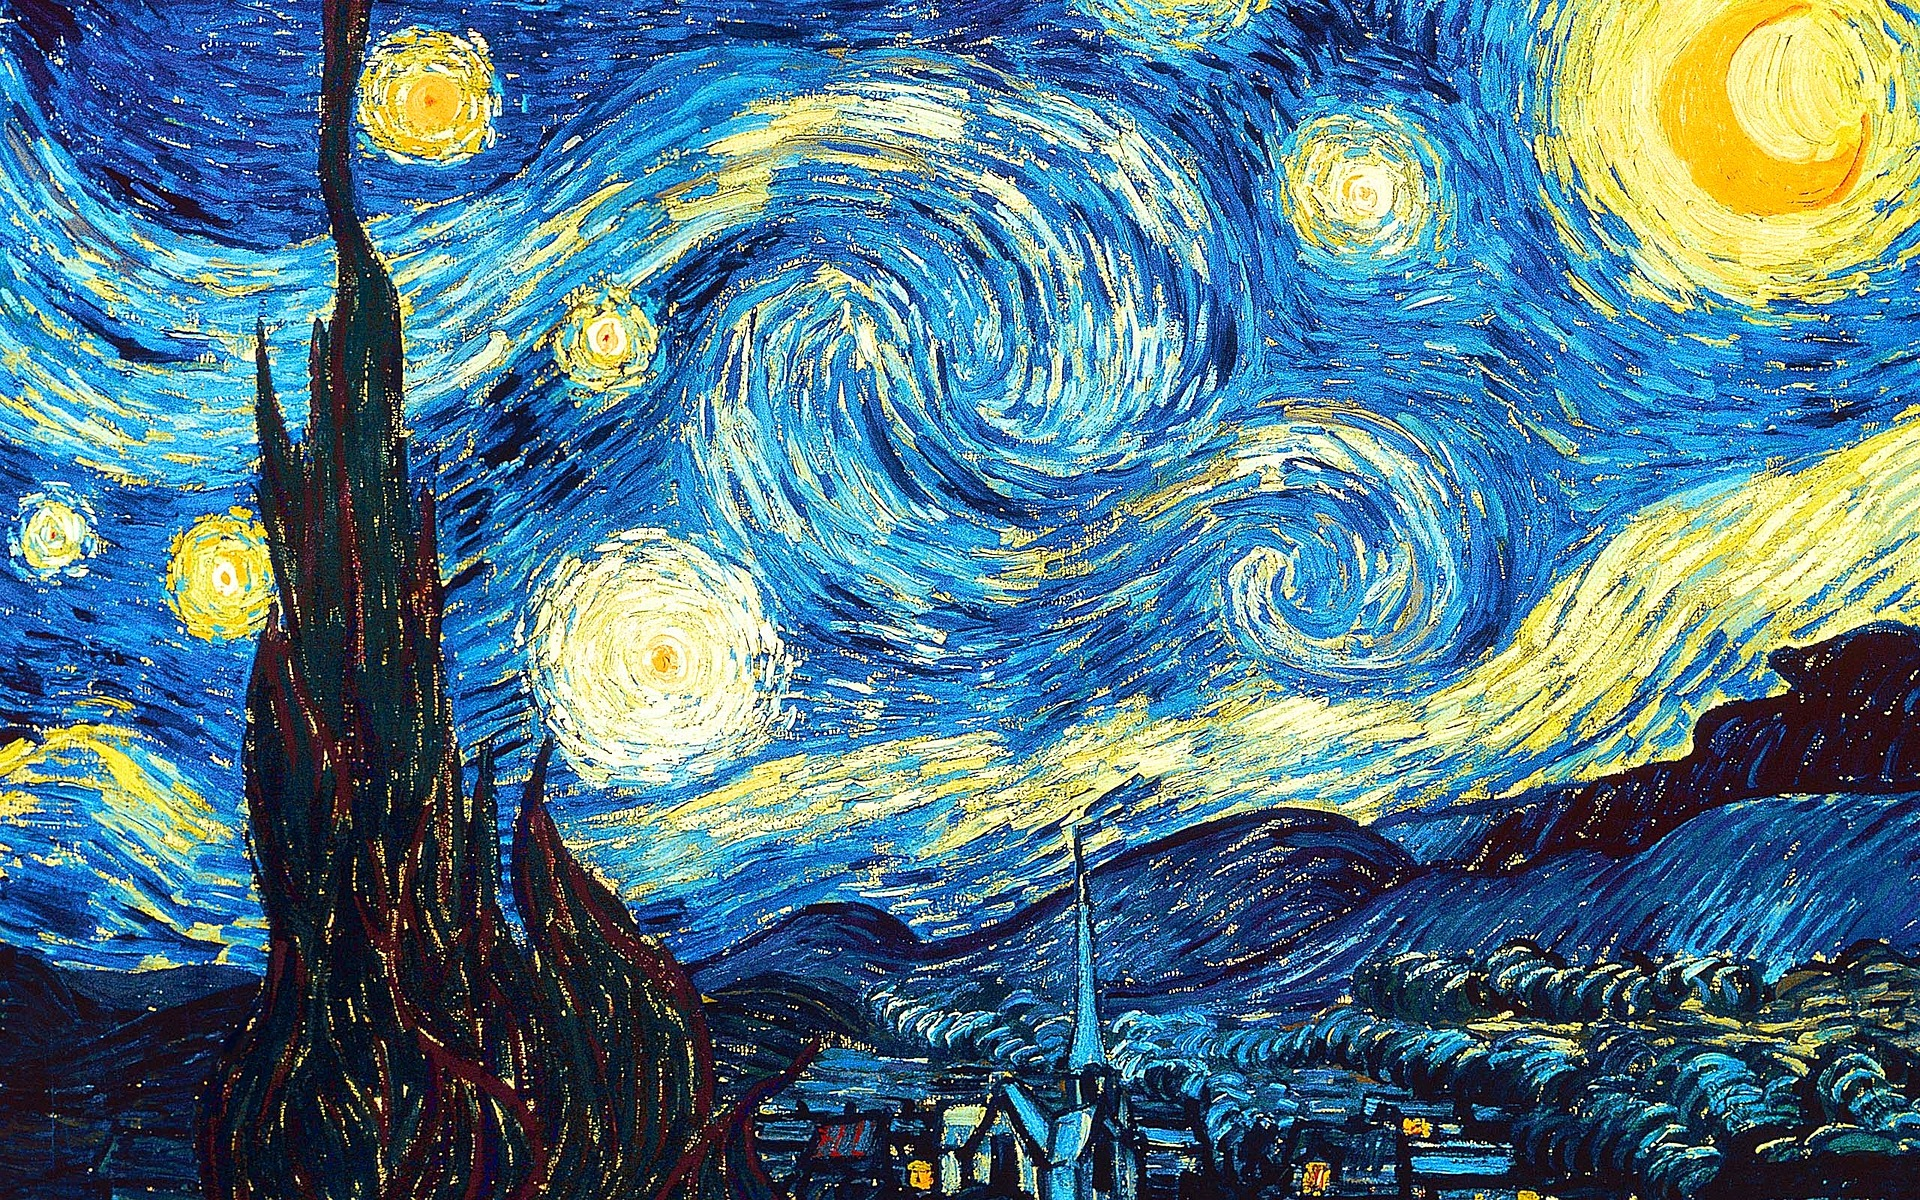 Why Does Van Goghs The Starry Night Captivate Us